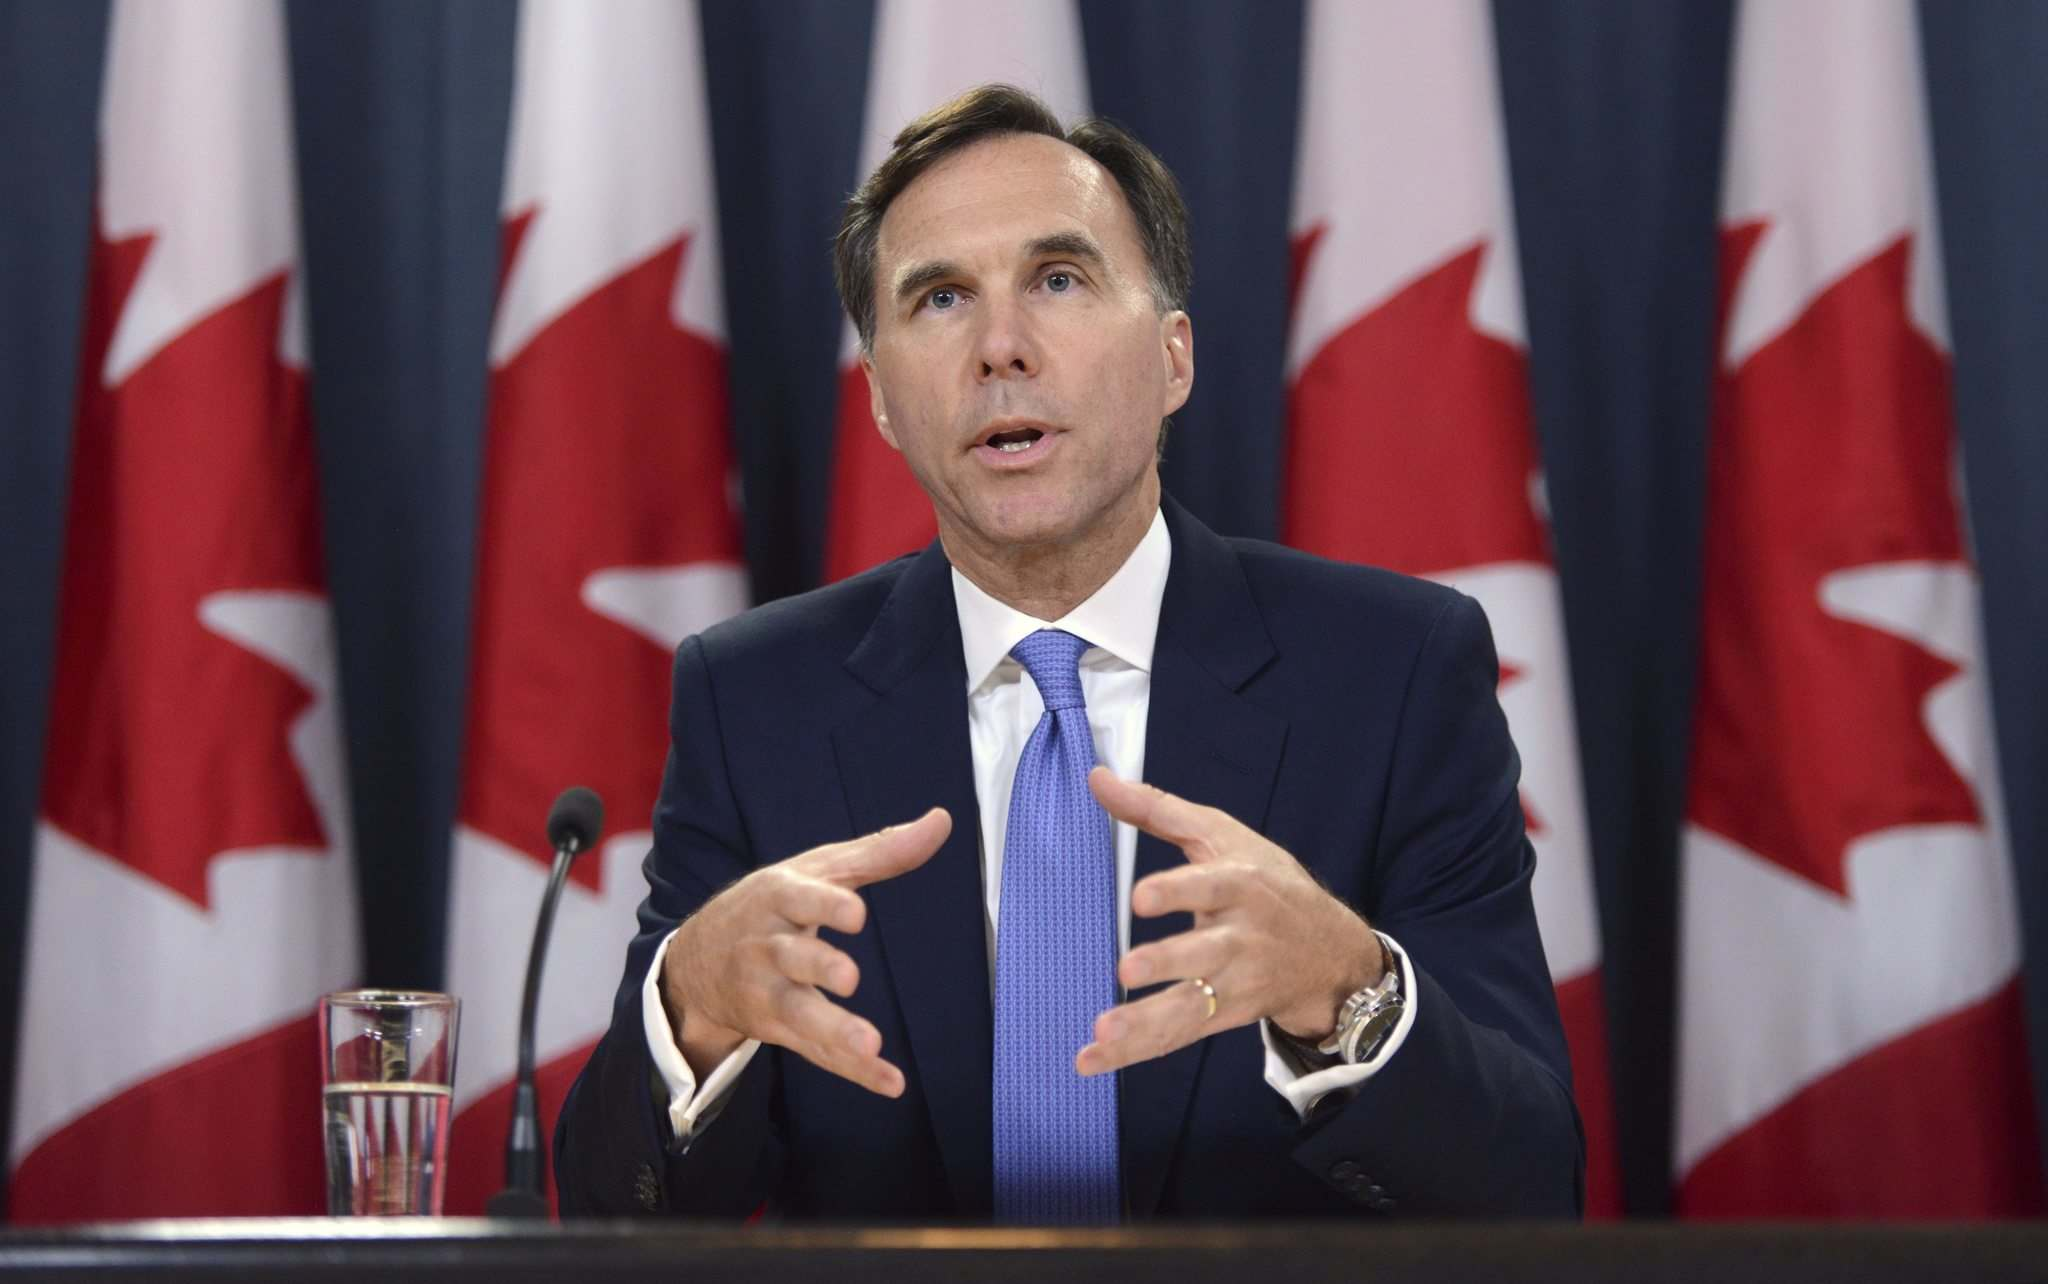 Finance Minister Bill Morneau's proposed changes are a concern for business organizations.